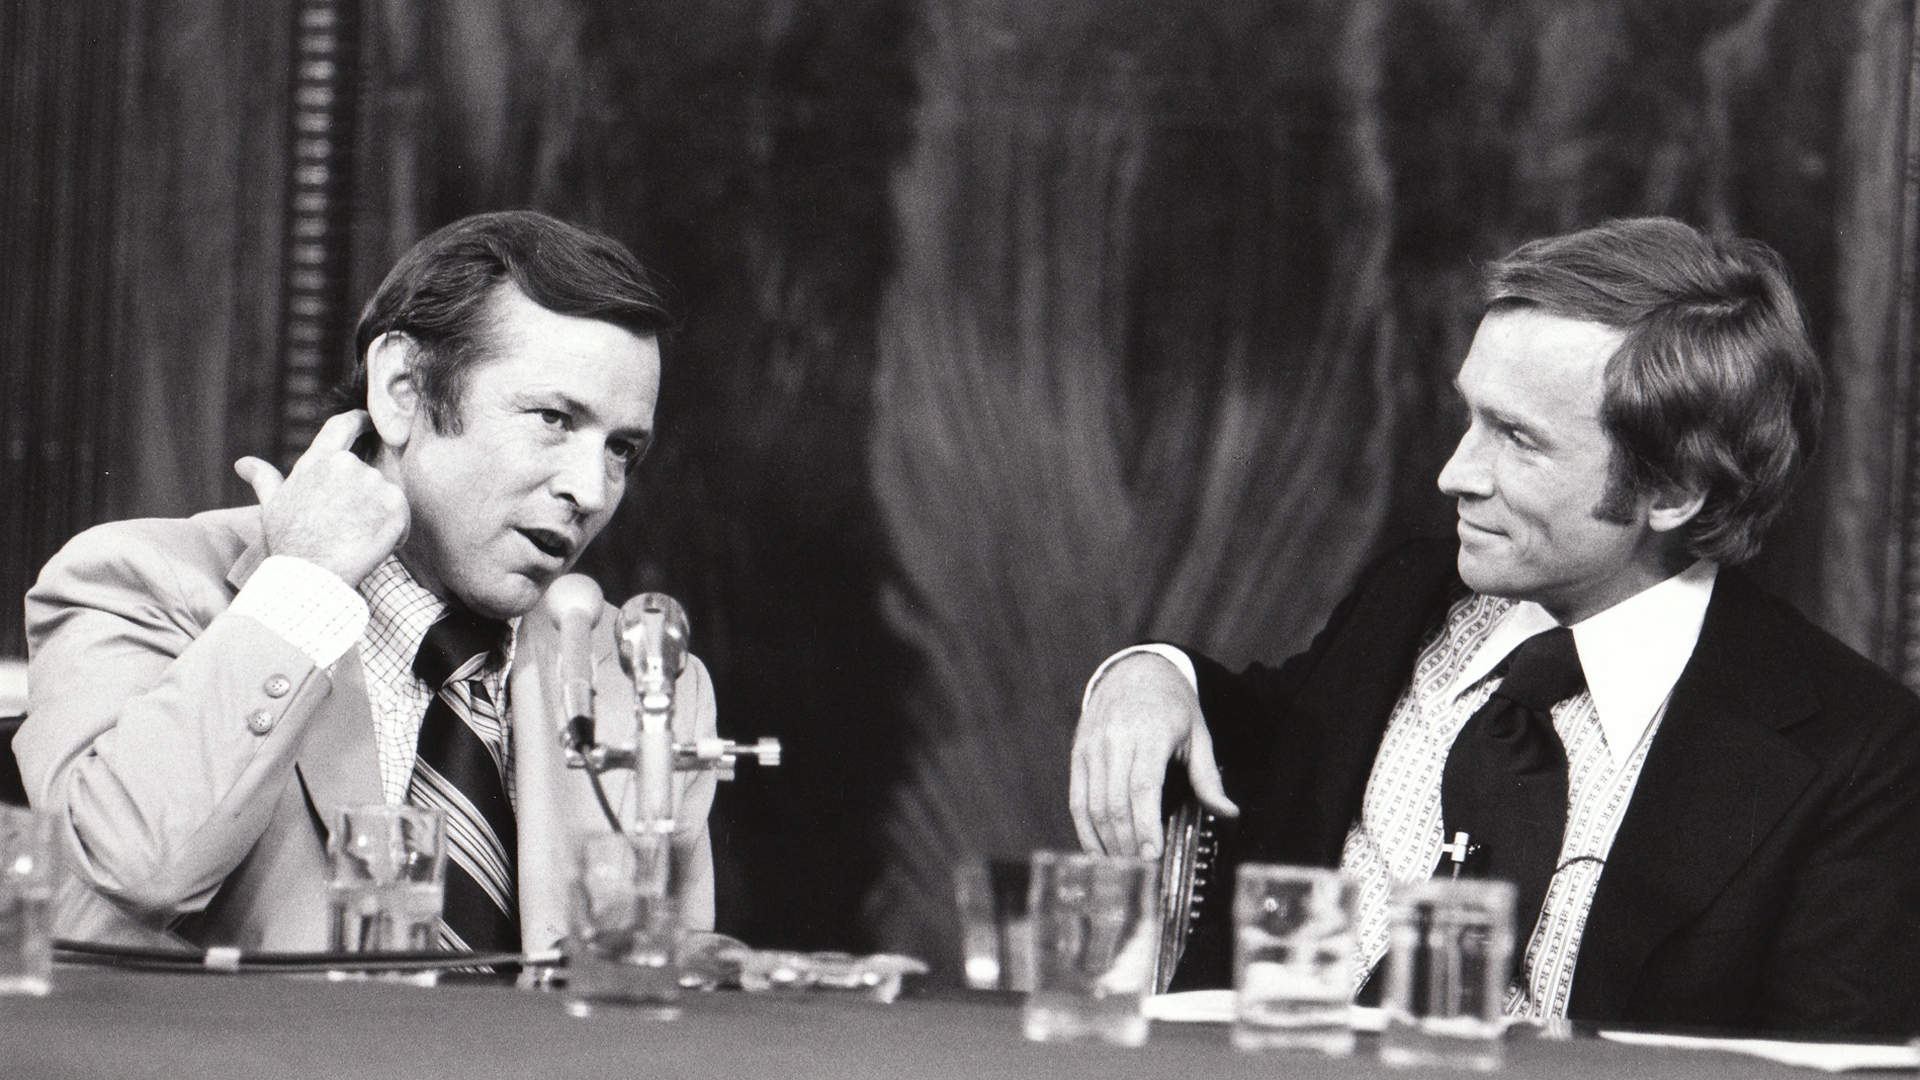 The Dick Cavett Show of 8/1/73 on location from the Senate Watergate Committee hearing room in Washington D.C. Dick is on the right; Committee Vice-Chairman Senator Howard Baker is on the left.